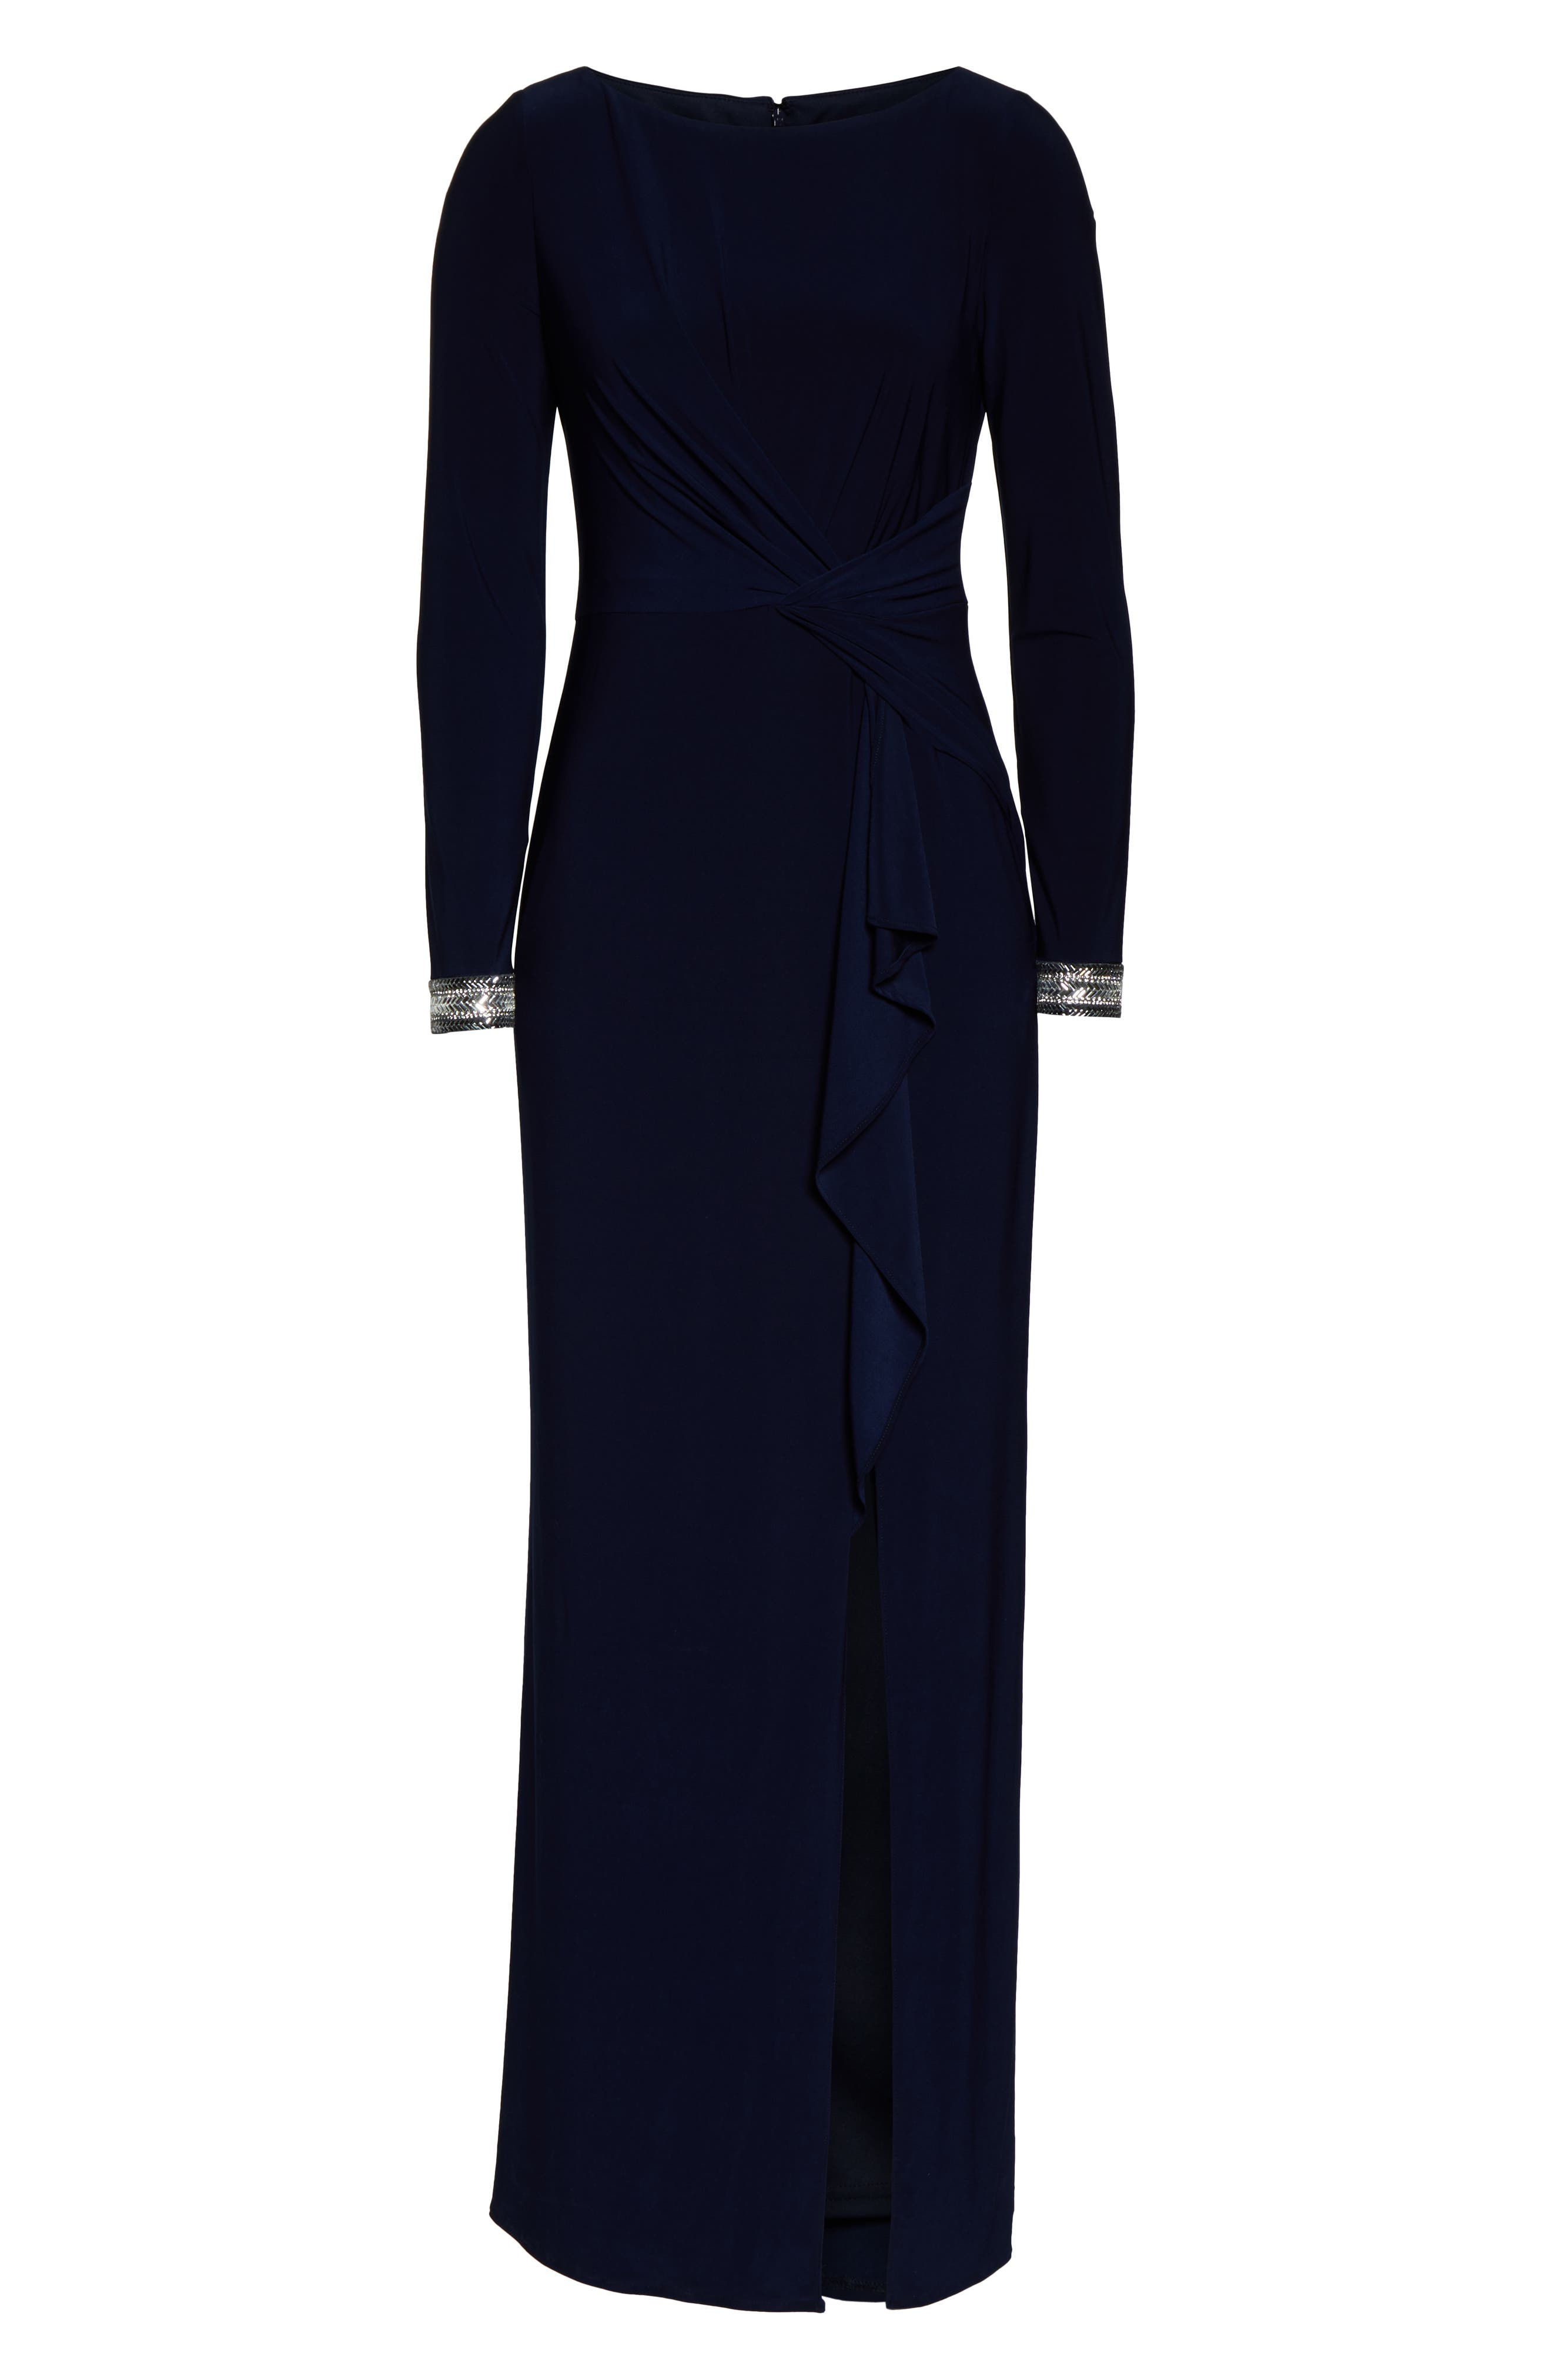 VINCE CAMUTO, Beaded Cuff Ruched Jersey Dress, Alternate thumbnail 7, color, NAVY